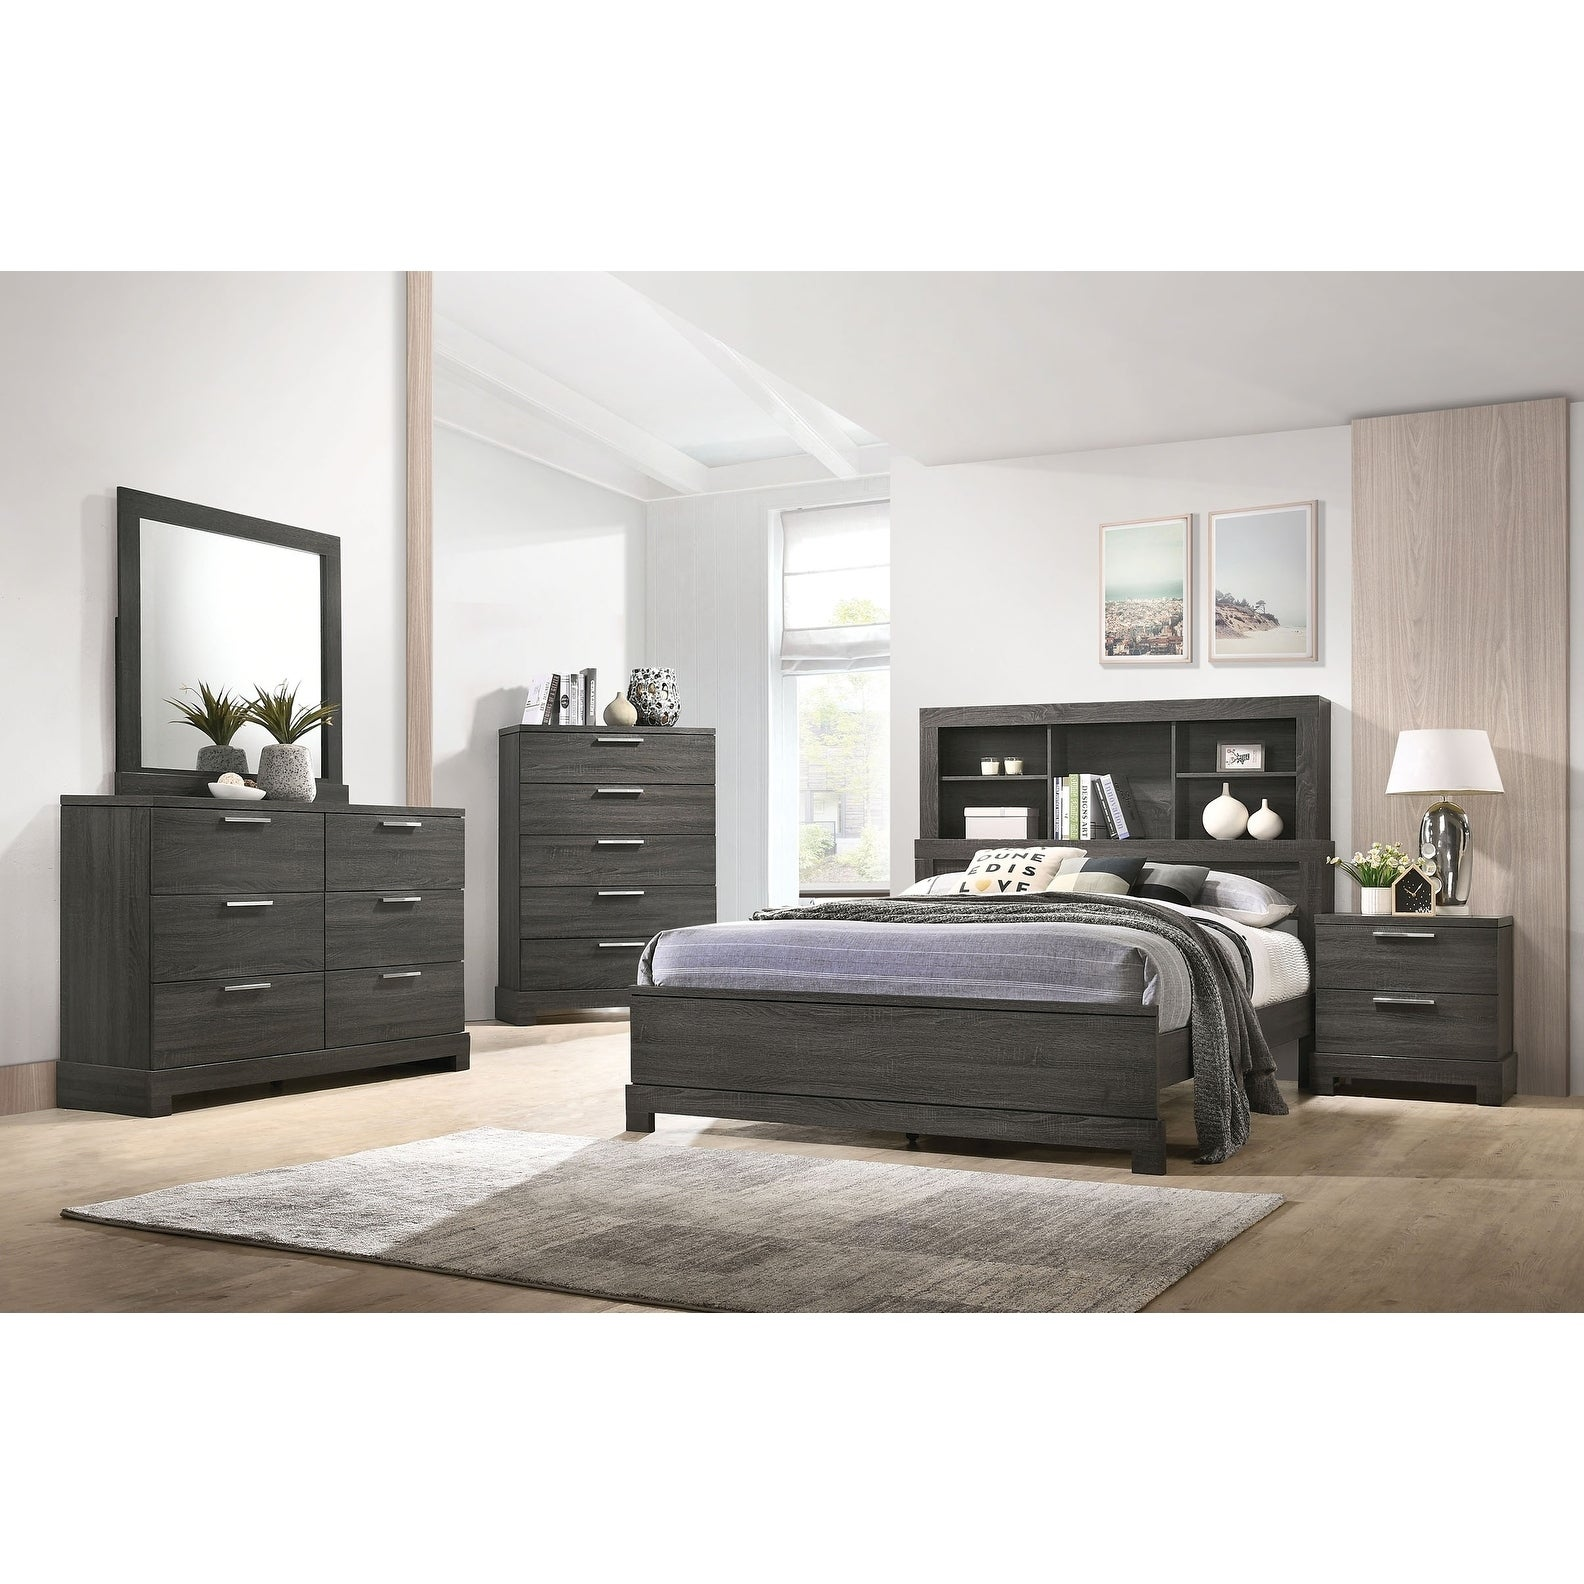 Acme Lantha Eastern King Bed With Storage In Gray Oak